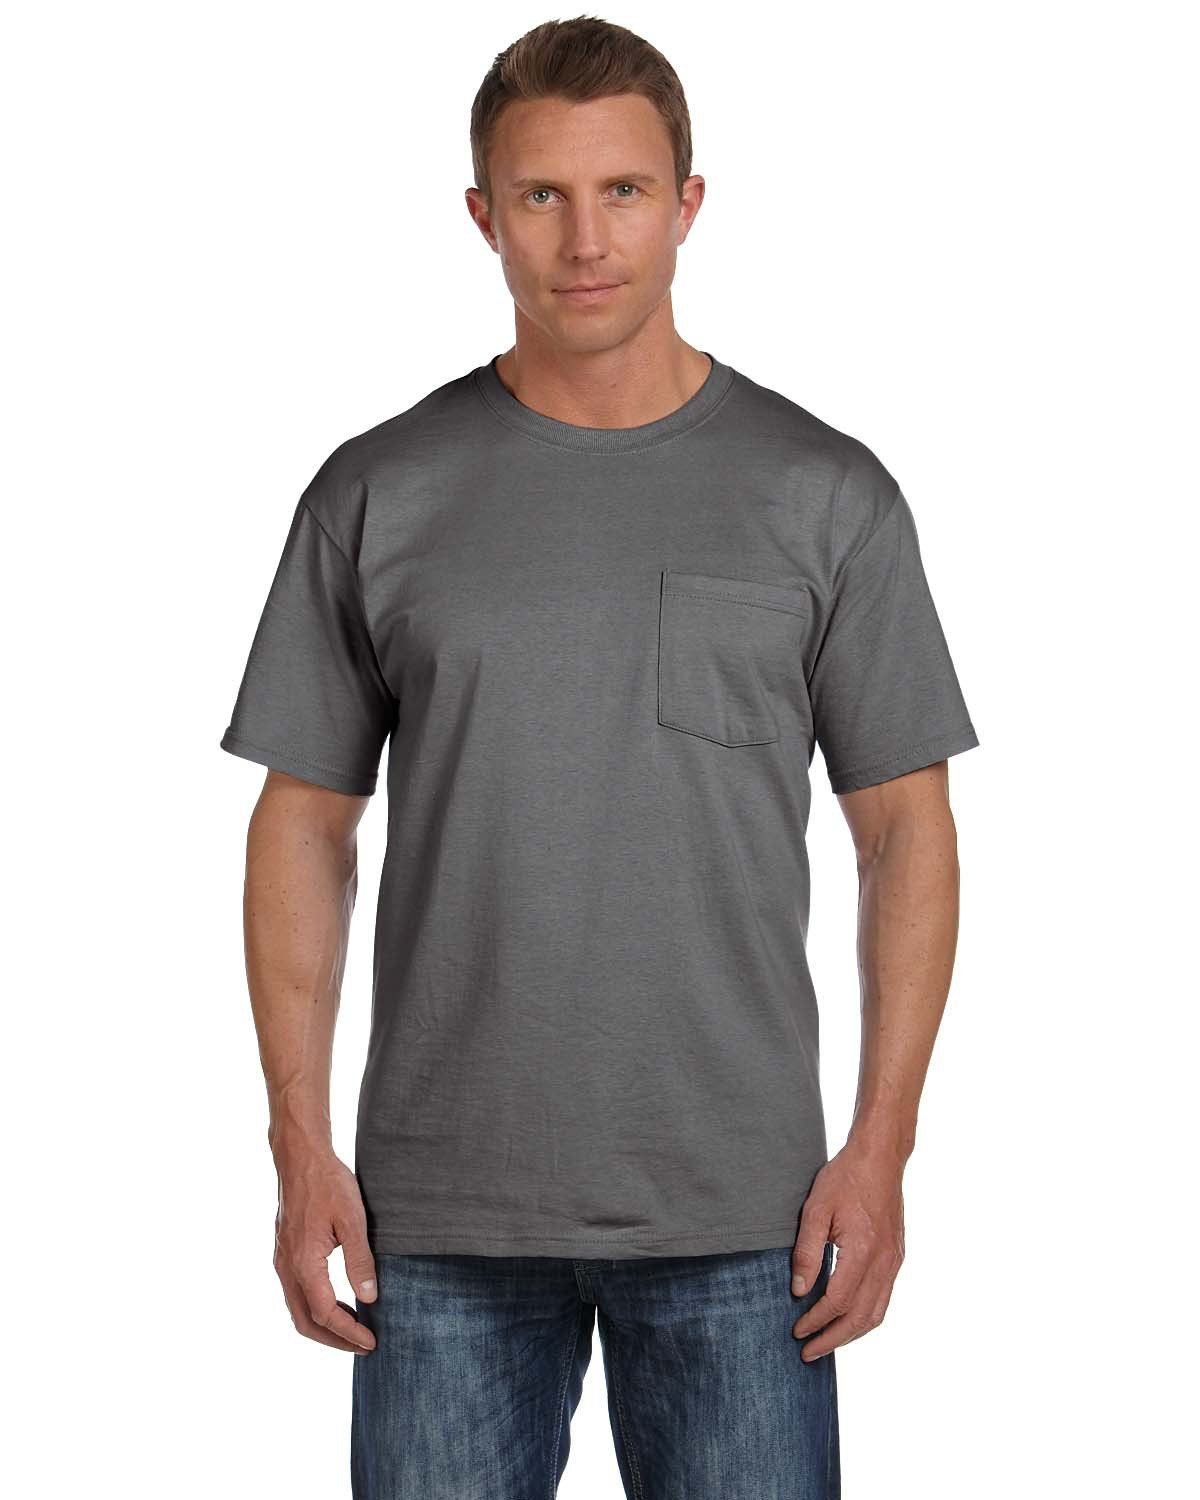 Fruit of the Loom Adult HD Cotton™ Pocket T-Shirt CHARCOAL GREY